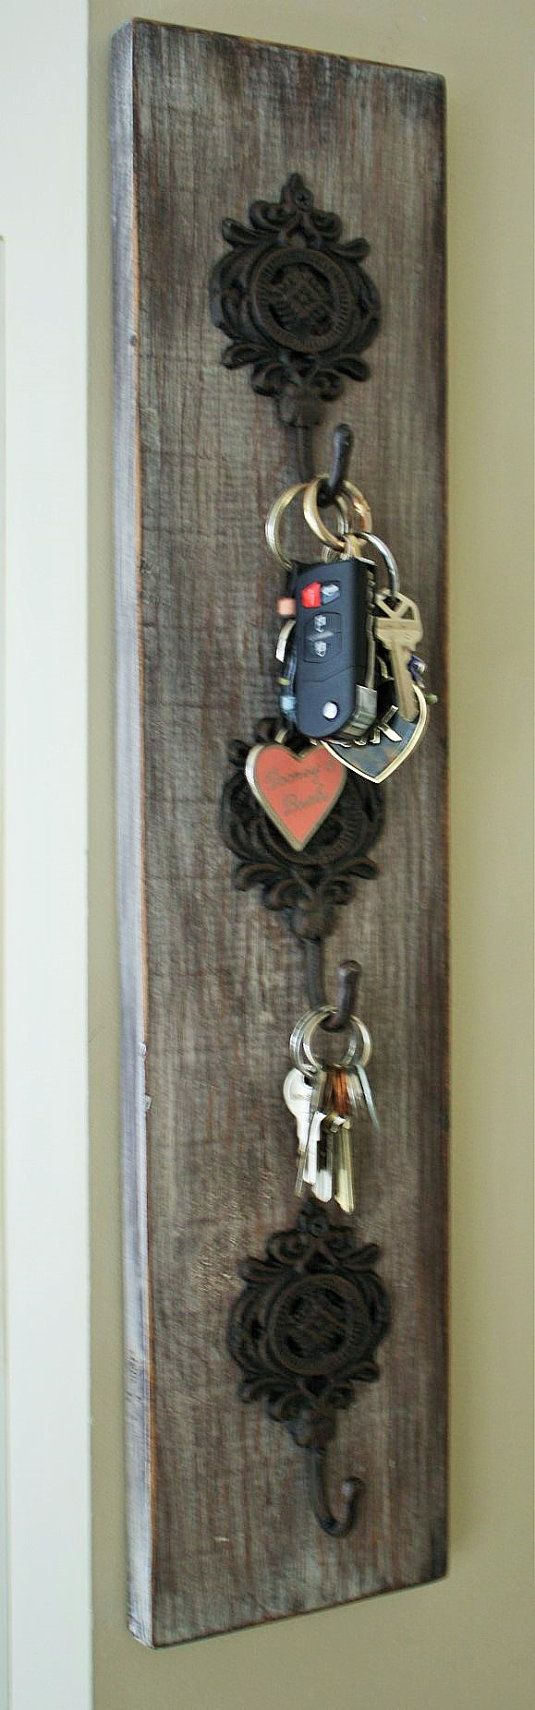 Key, Jewelry, Purse, Coats, Towel Hook Organizer - Hand made reclaimed barn wood